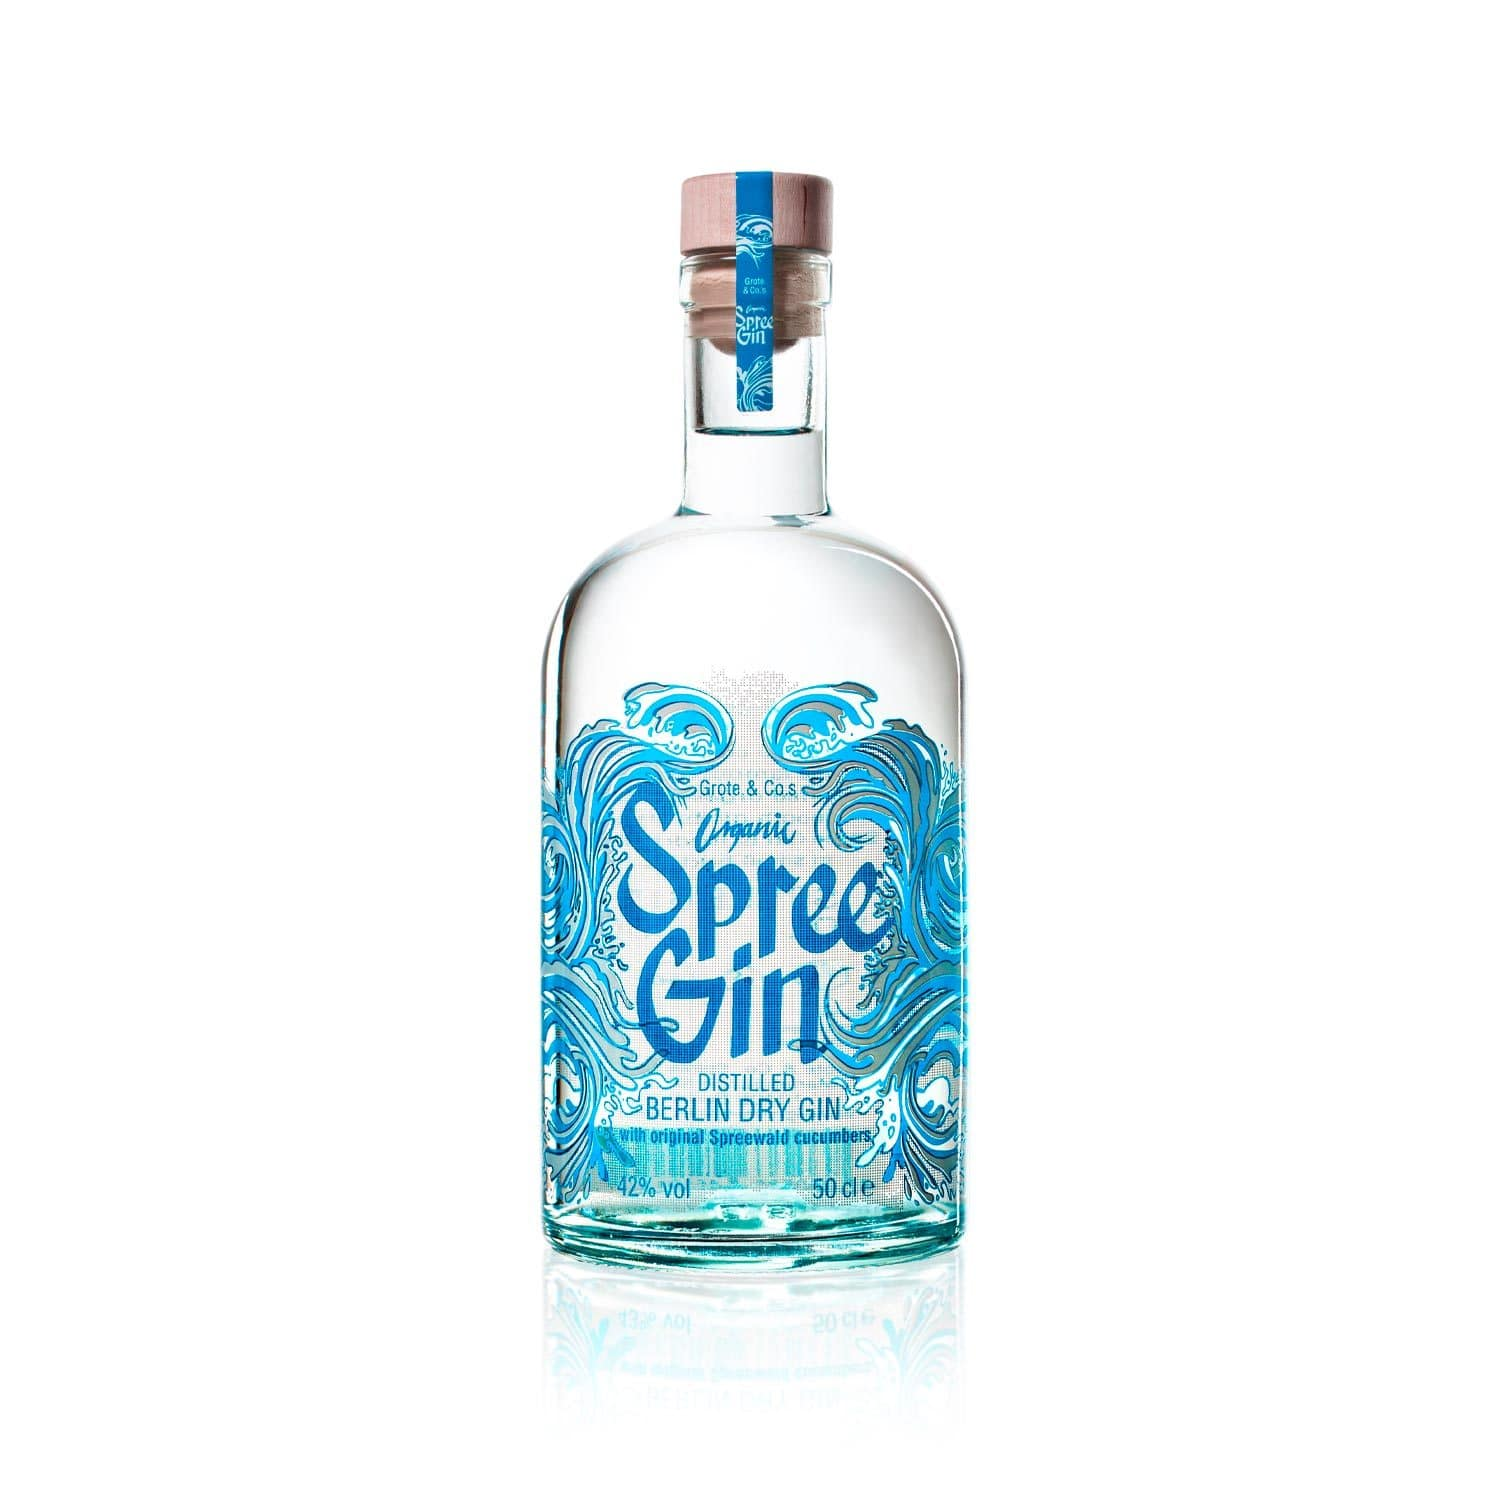 Spree Gin - Berlin Bio Dry Gin 50cl